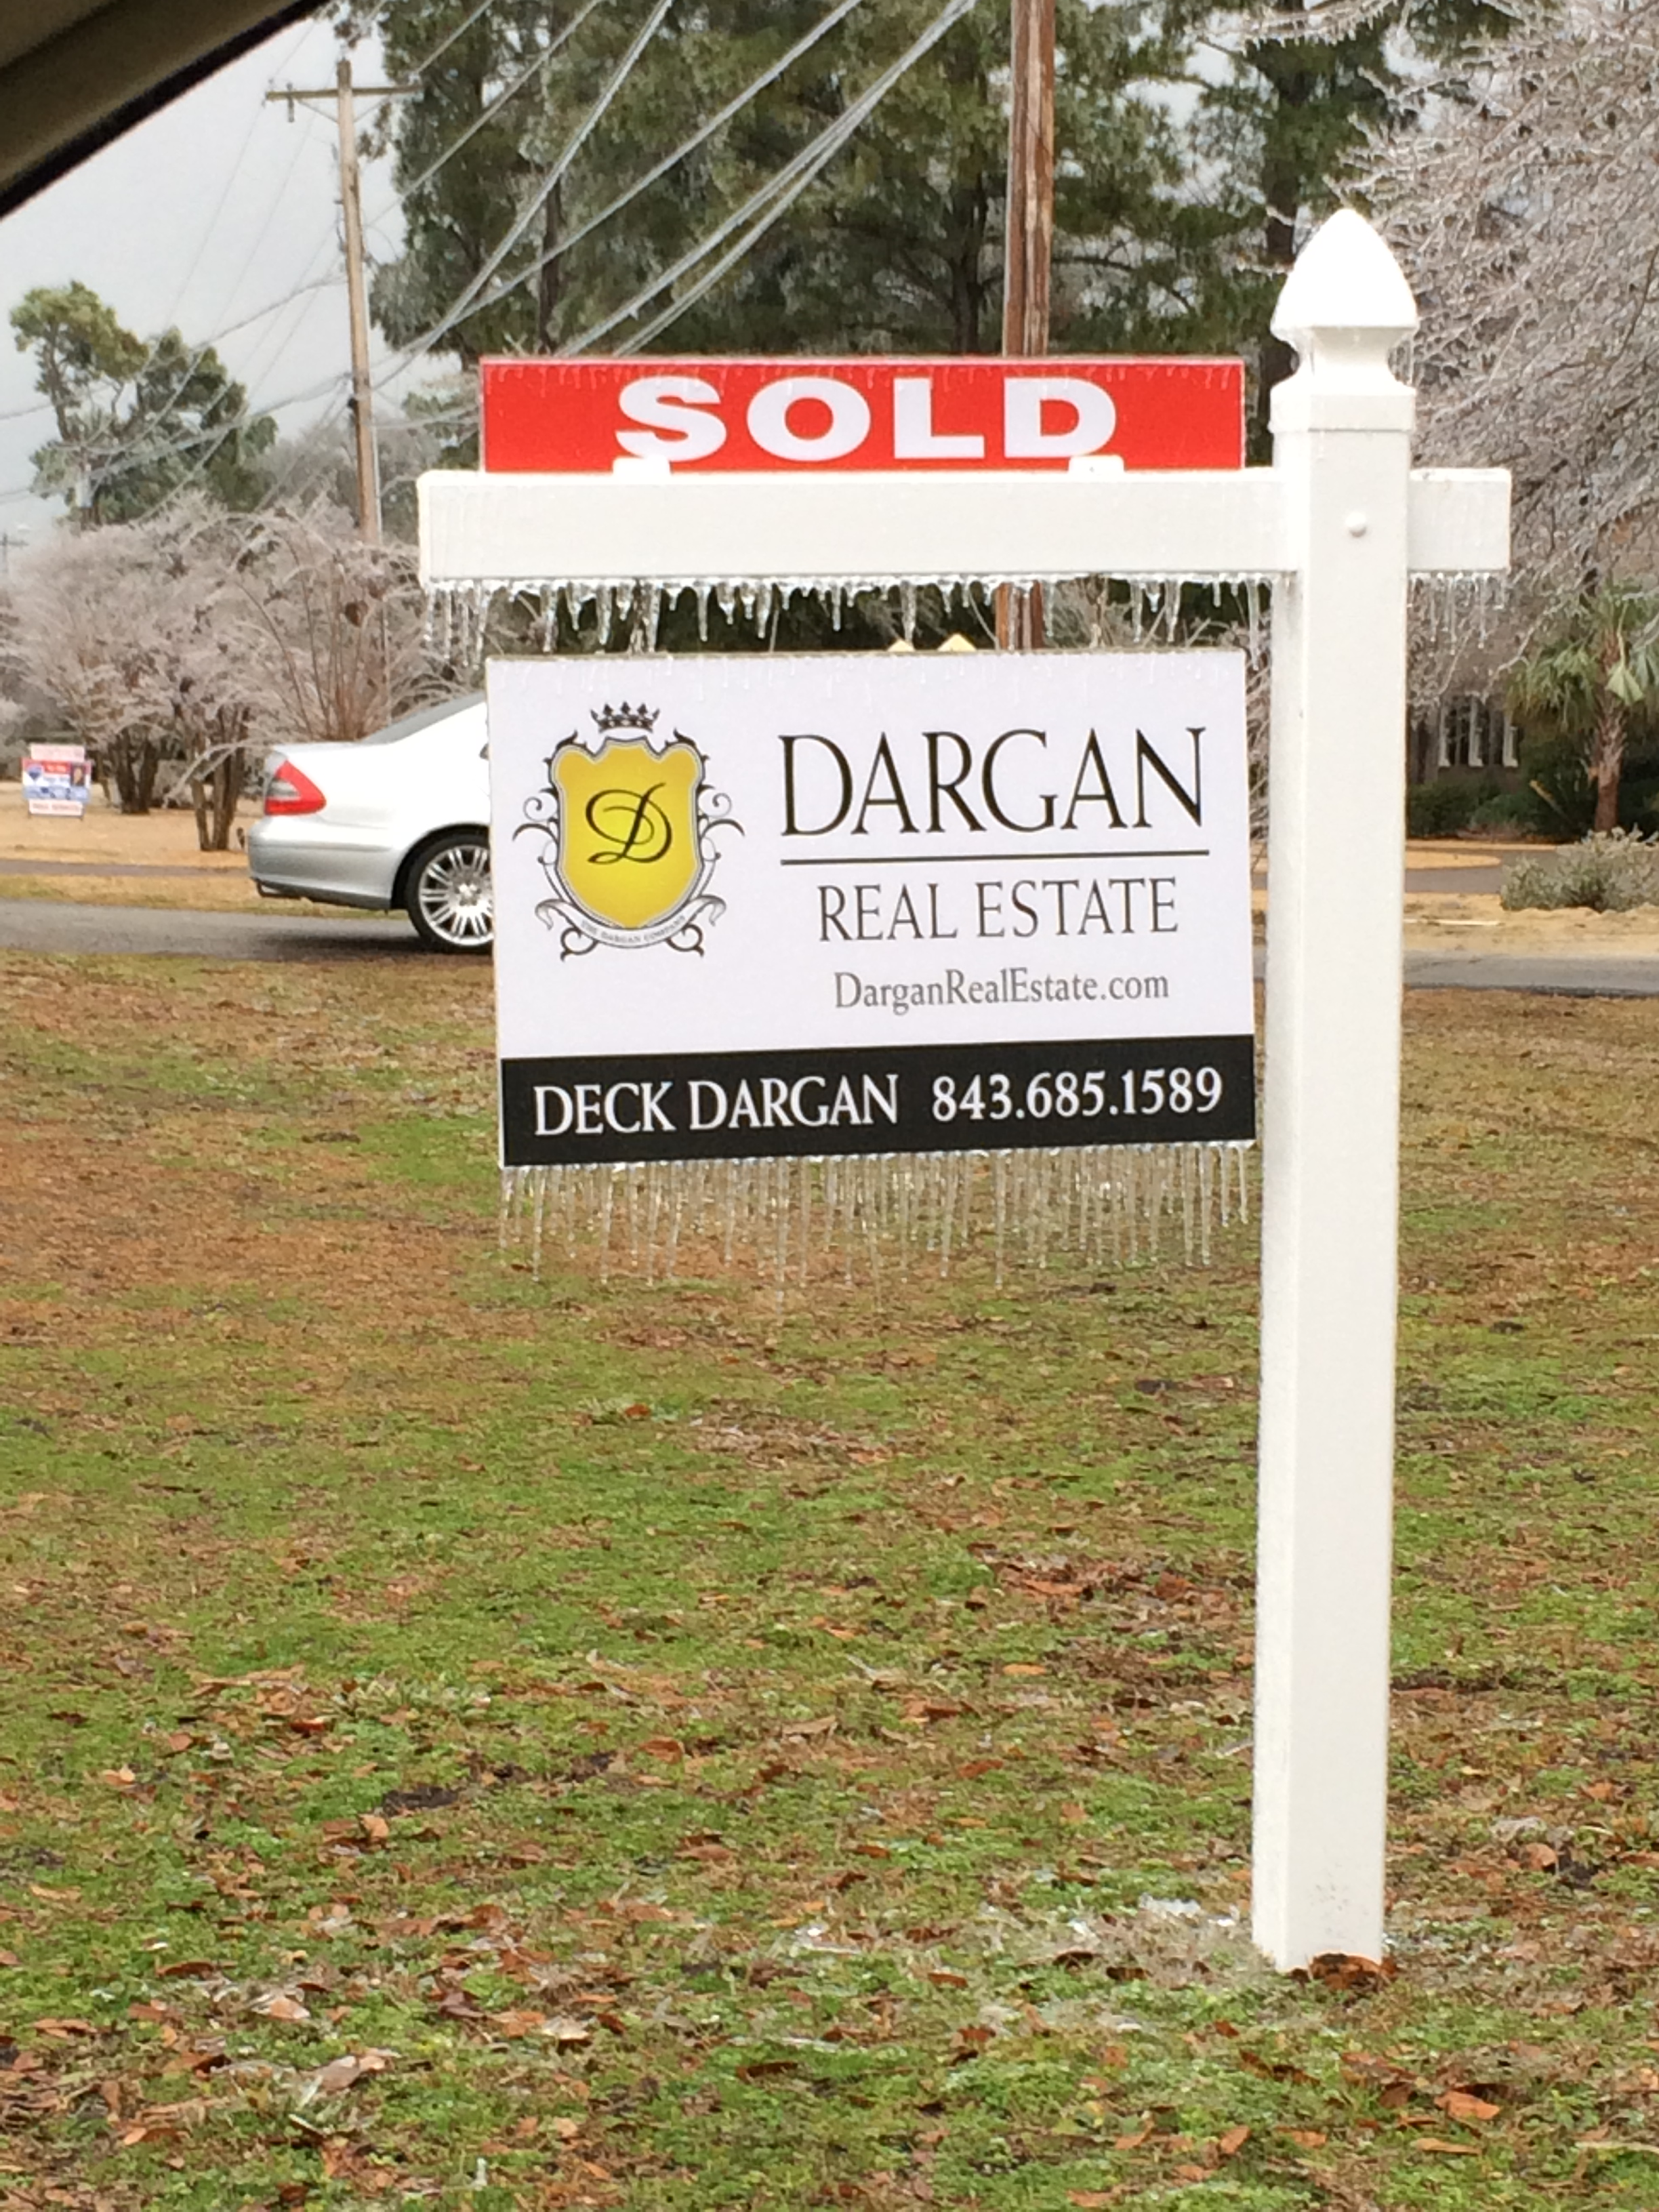 Myrtle Beach Real Estate by Dargan Real Estate Services